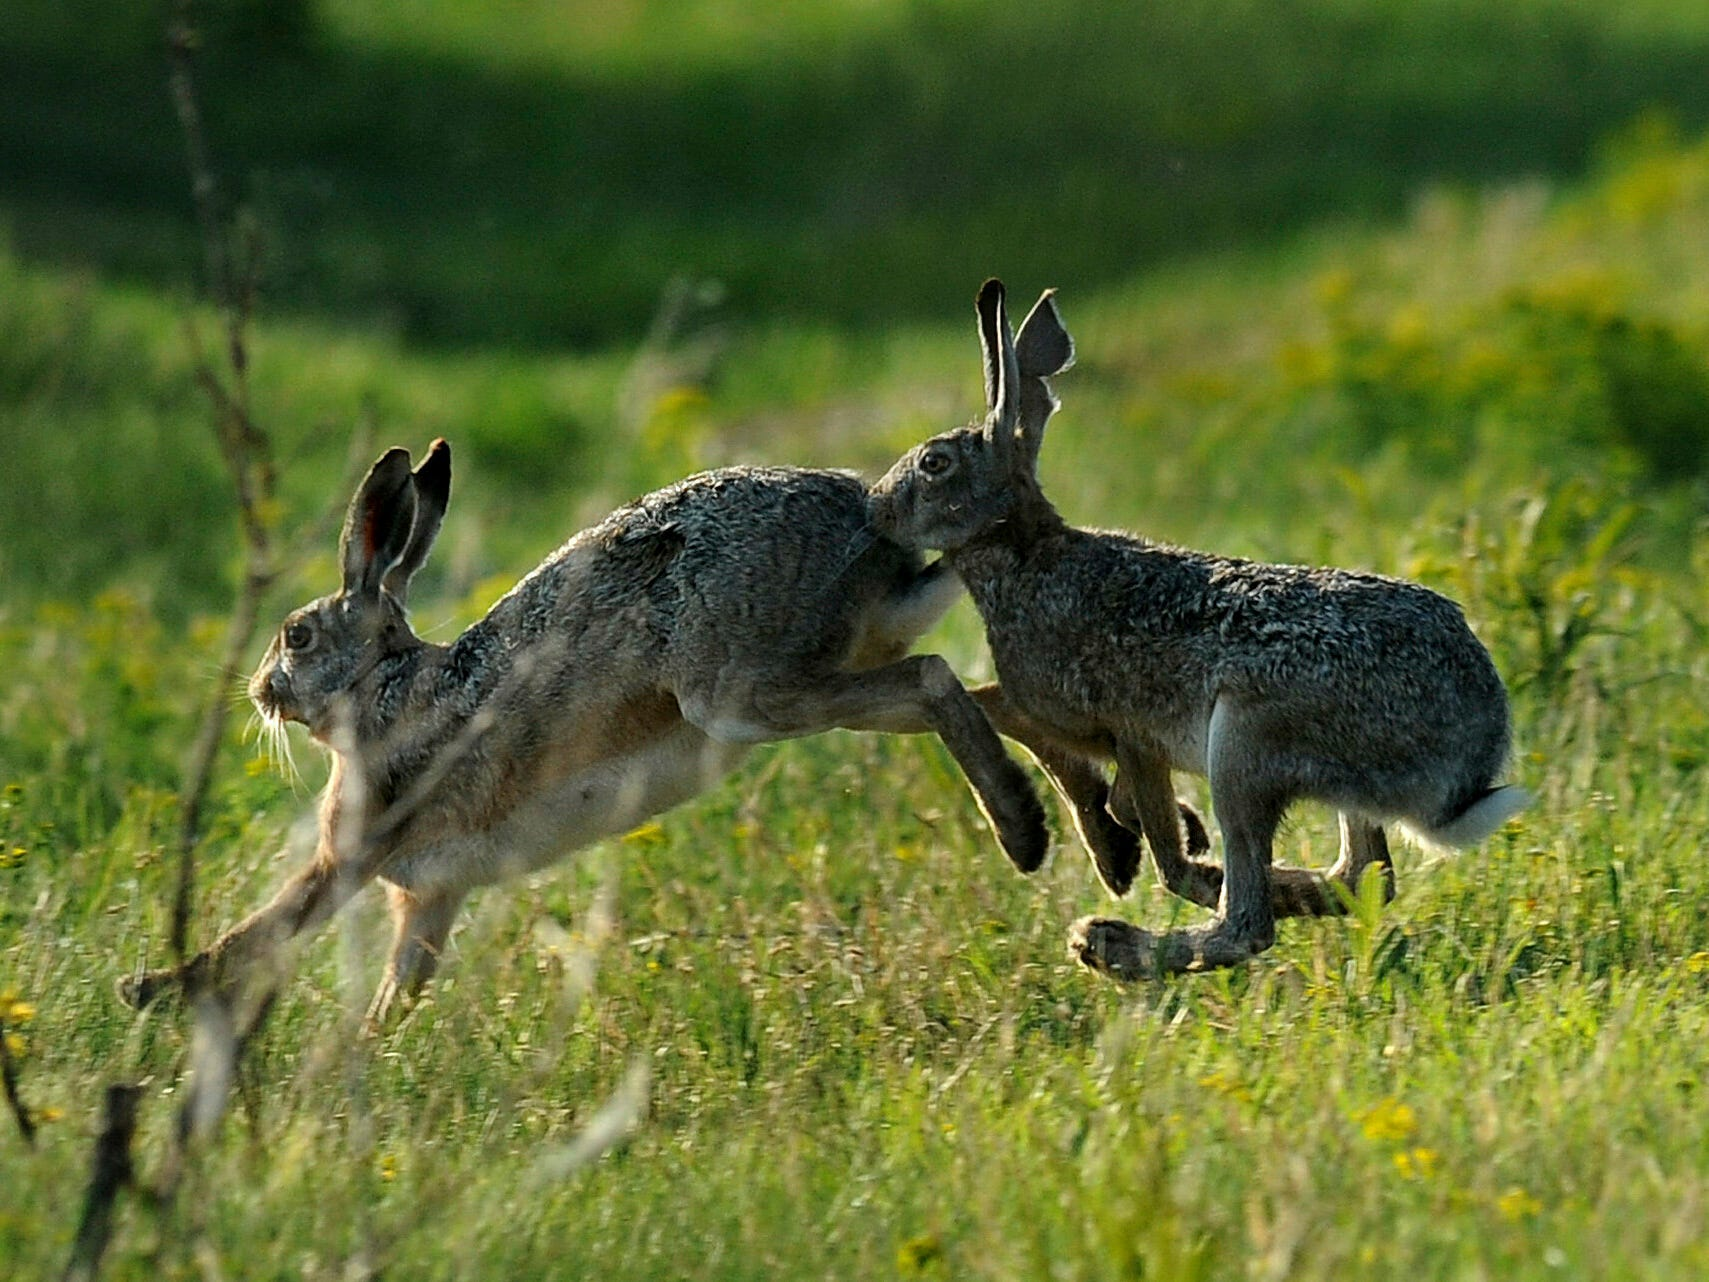 A photo made available on April 22, 2019, shows brown hares (Lepus europaeus) playing on a meadow near Tiszaalpar, 116 kms southeast of Budapest, Hungary, Sunday, April 21, 2019.